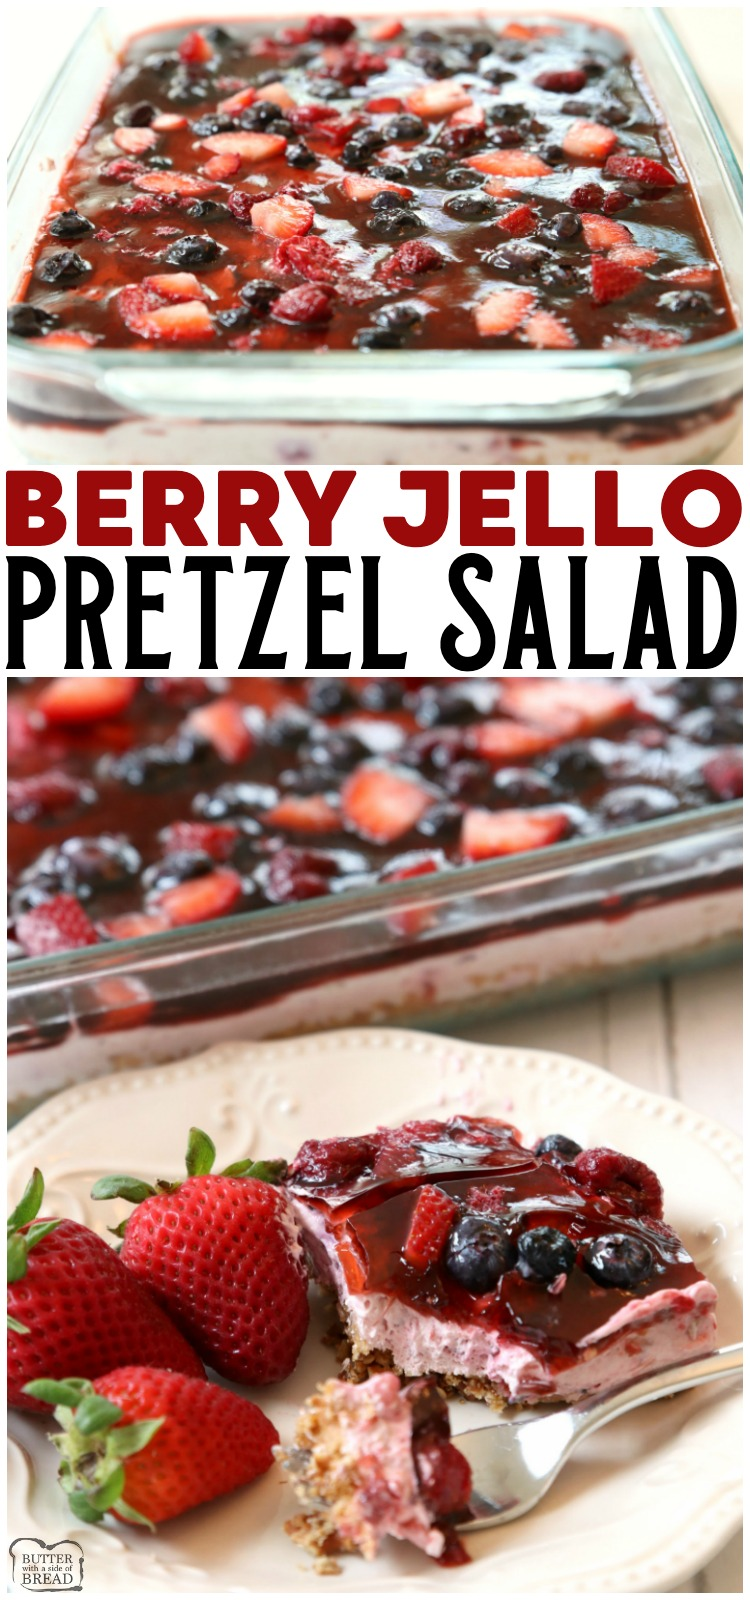 Berry Jello Pretzel Salad made with fresh berries & fruity Jell-O on a buttery pretzel crust! Gorgeous Jello salad recipe that tastes amazing and is so easy to make. #jello #jellosalad #berry #recipe #summer #Spring #berries from BUTTER WITH A SIDE OF BREAD